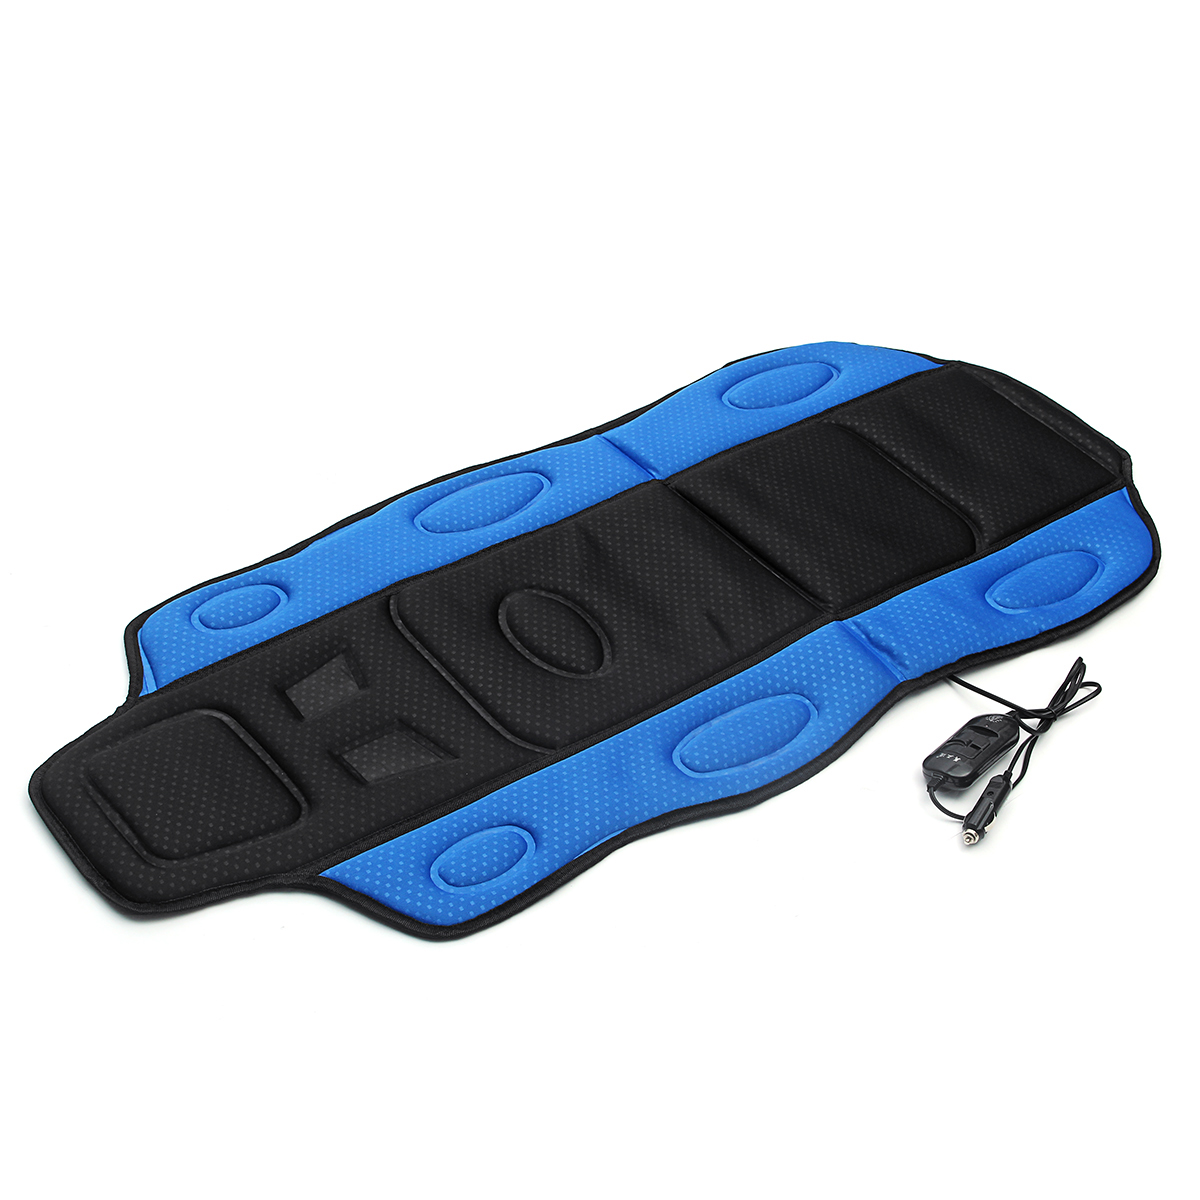 12V Car Seat Heated Cushion Seat Warmer Winter Household Cover Electric Heating Mat Black and Blue